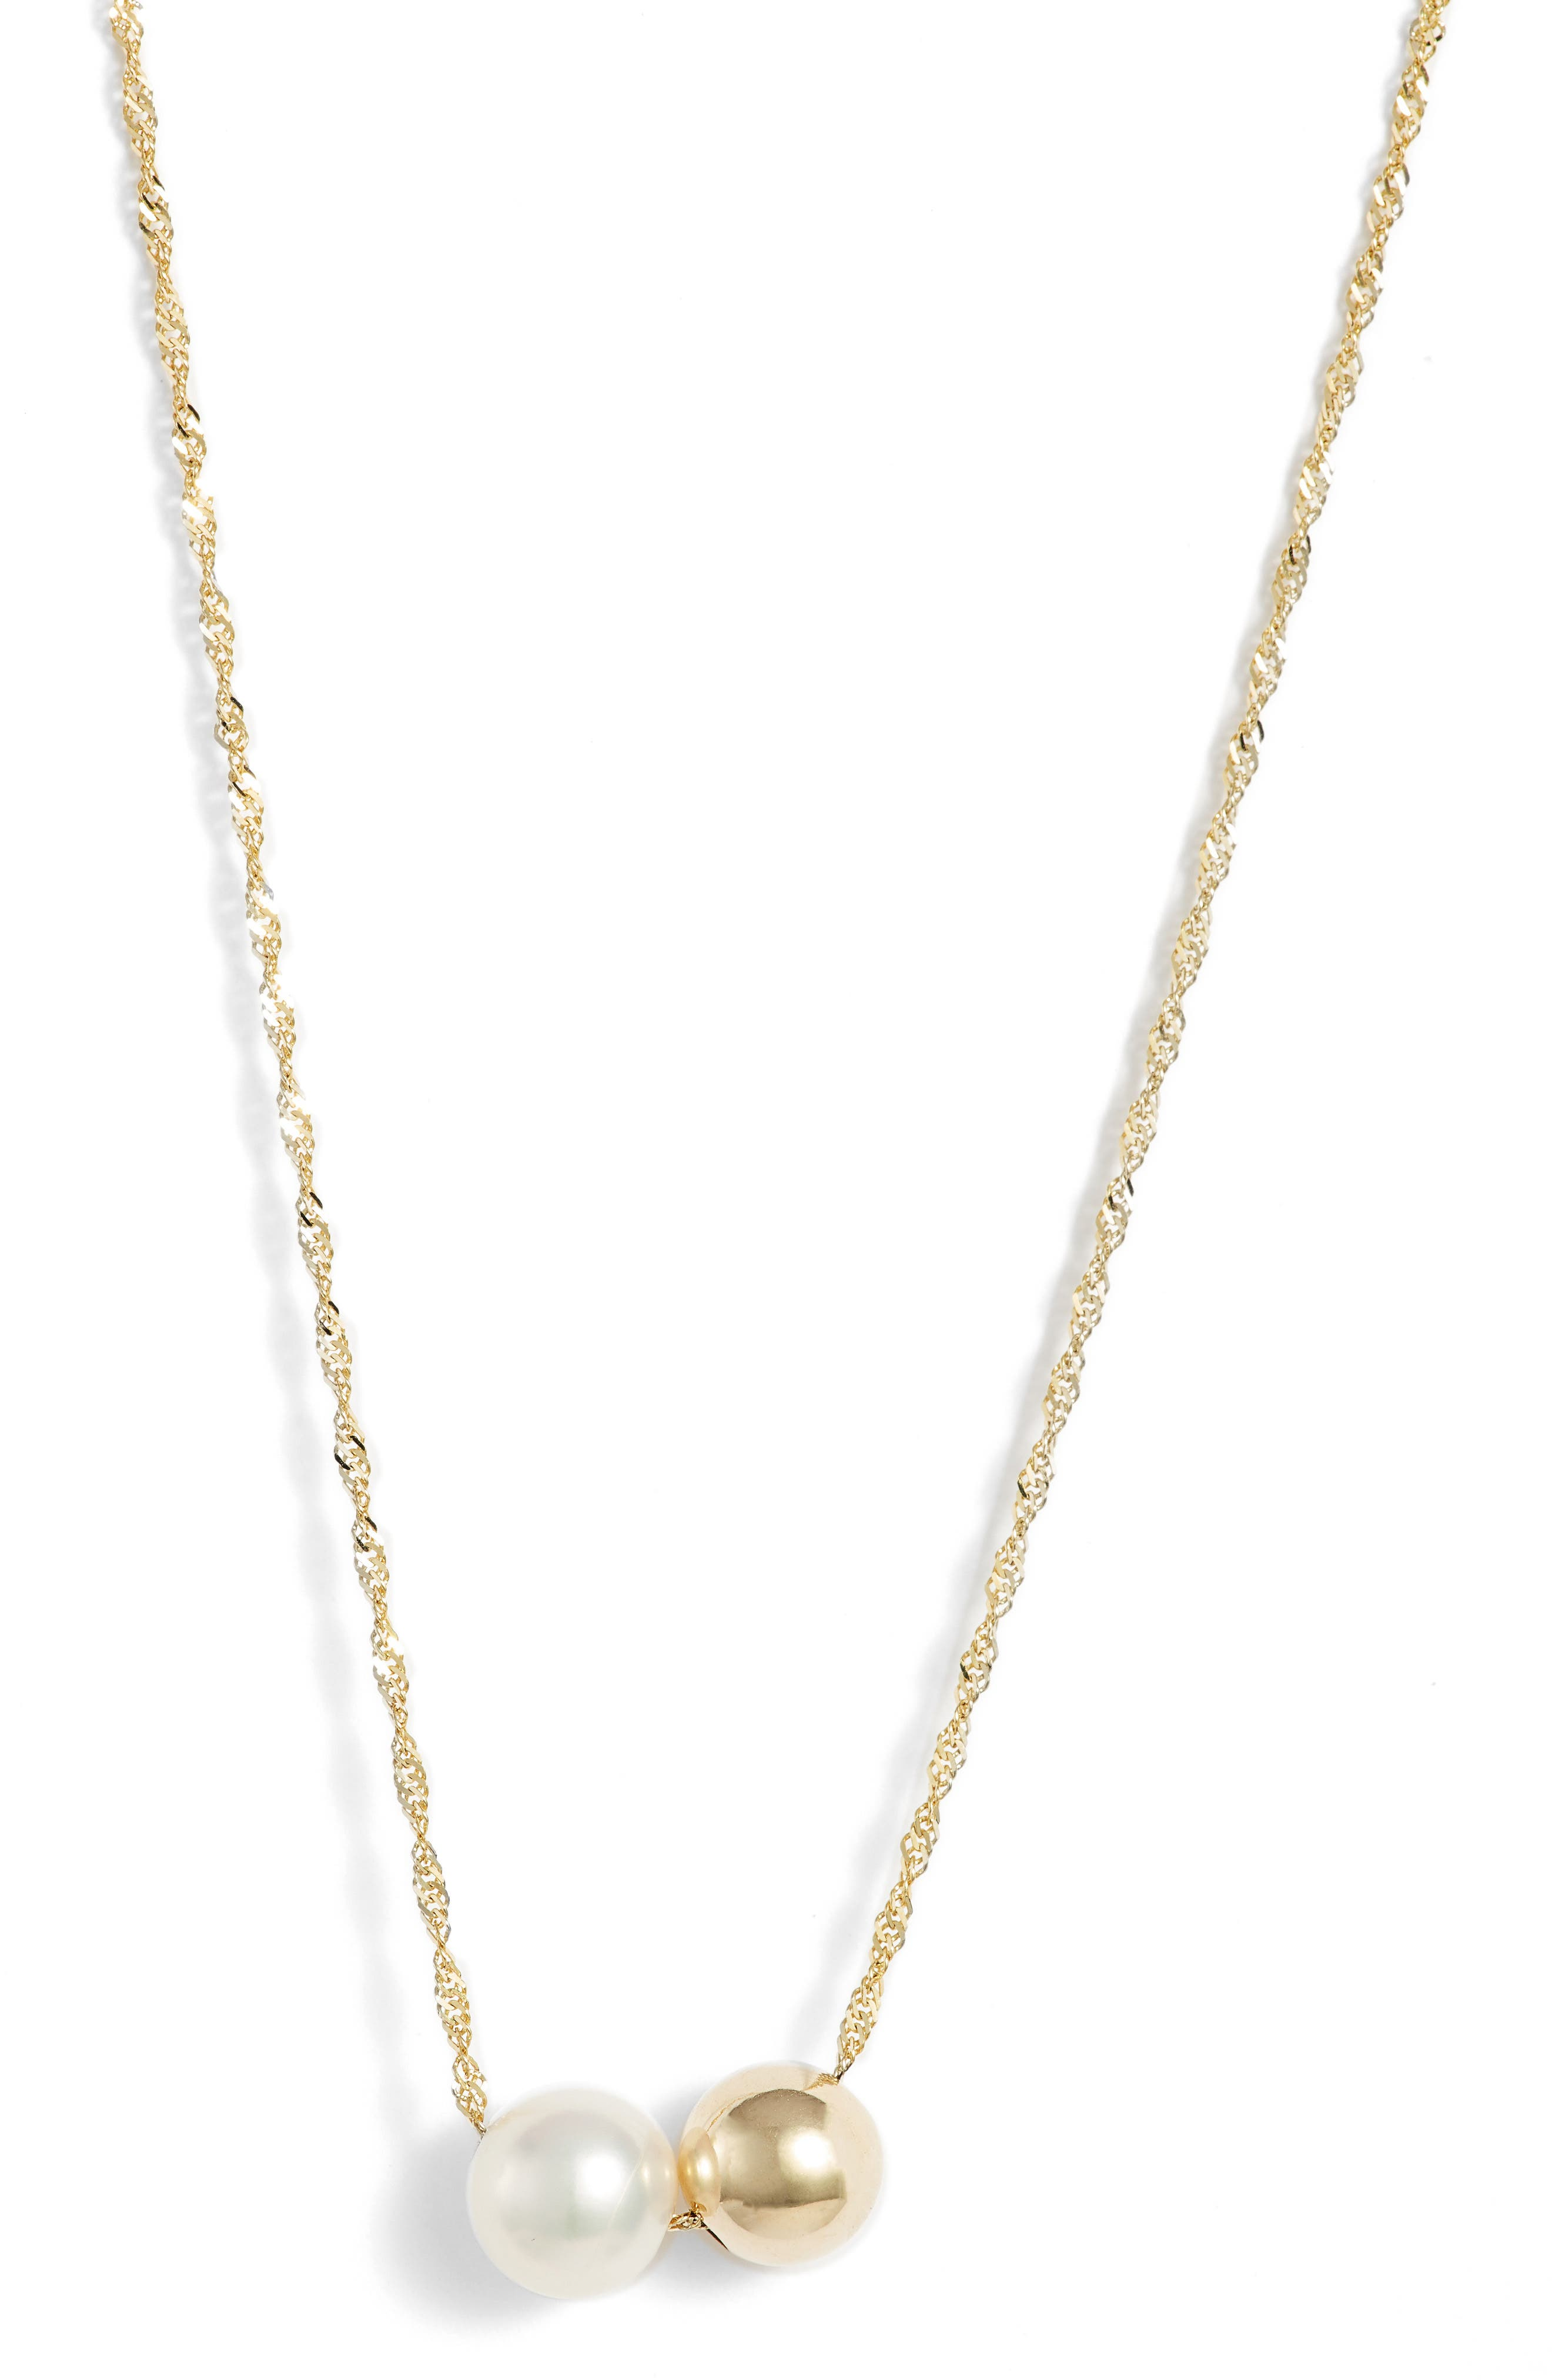 Duo Pearl Pendant Necklace,                             Main thumbnail 1, color,                             710